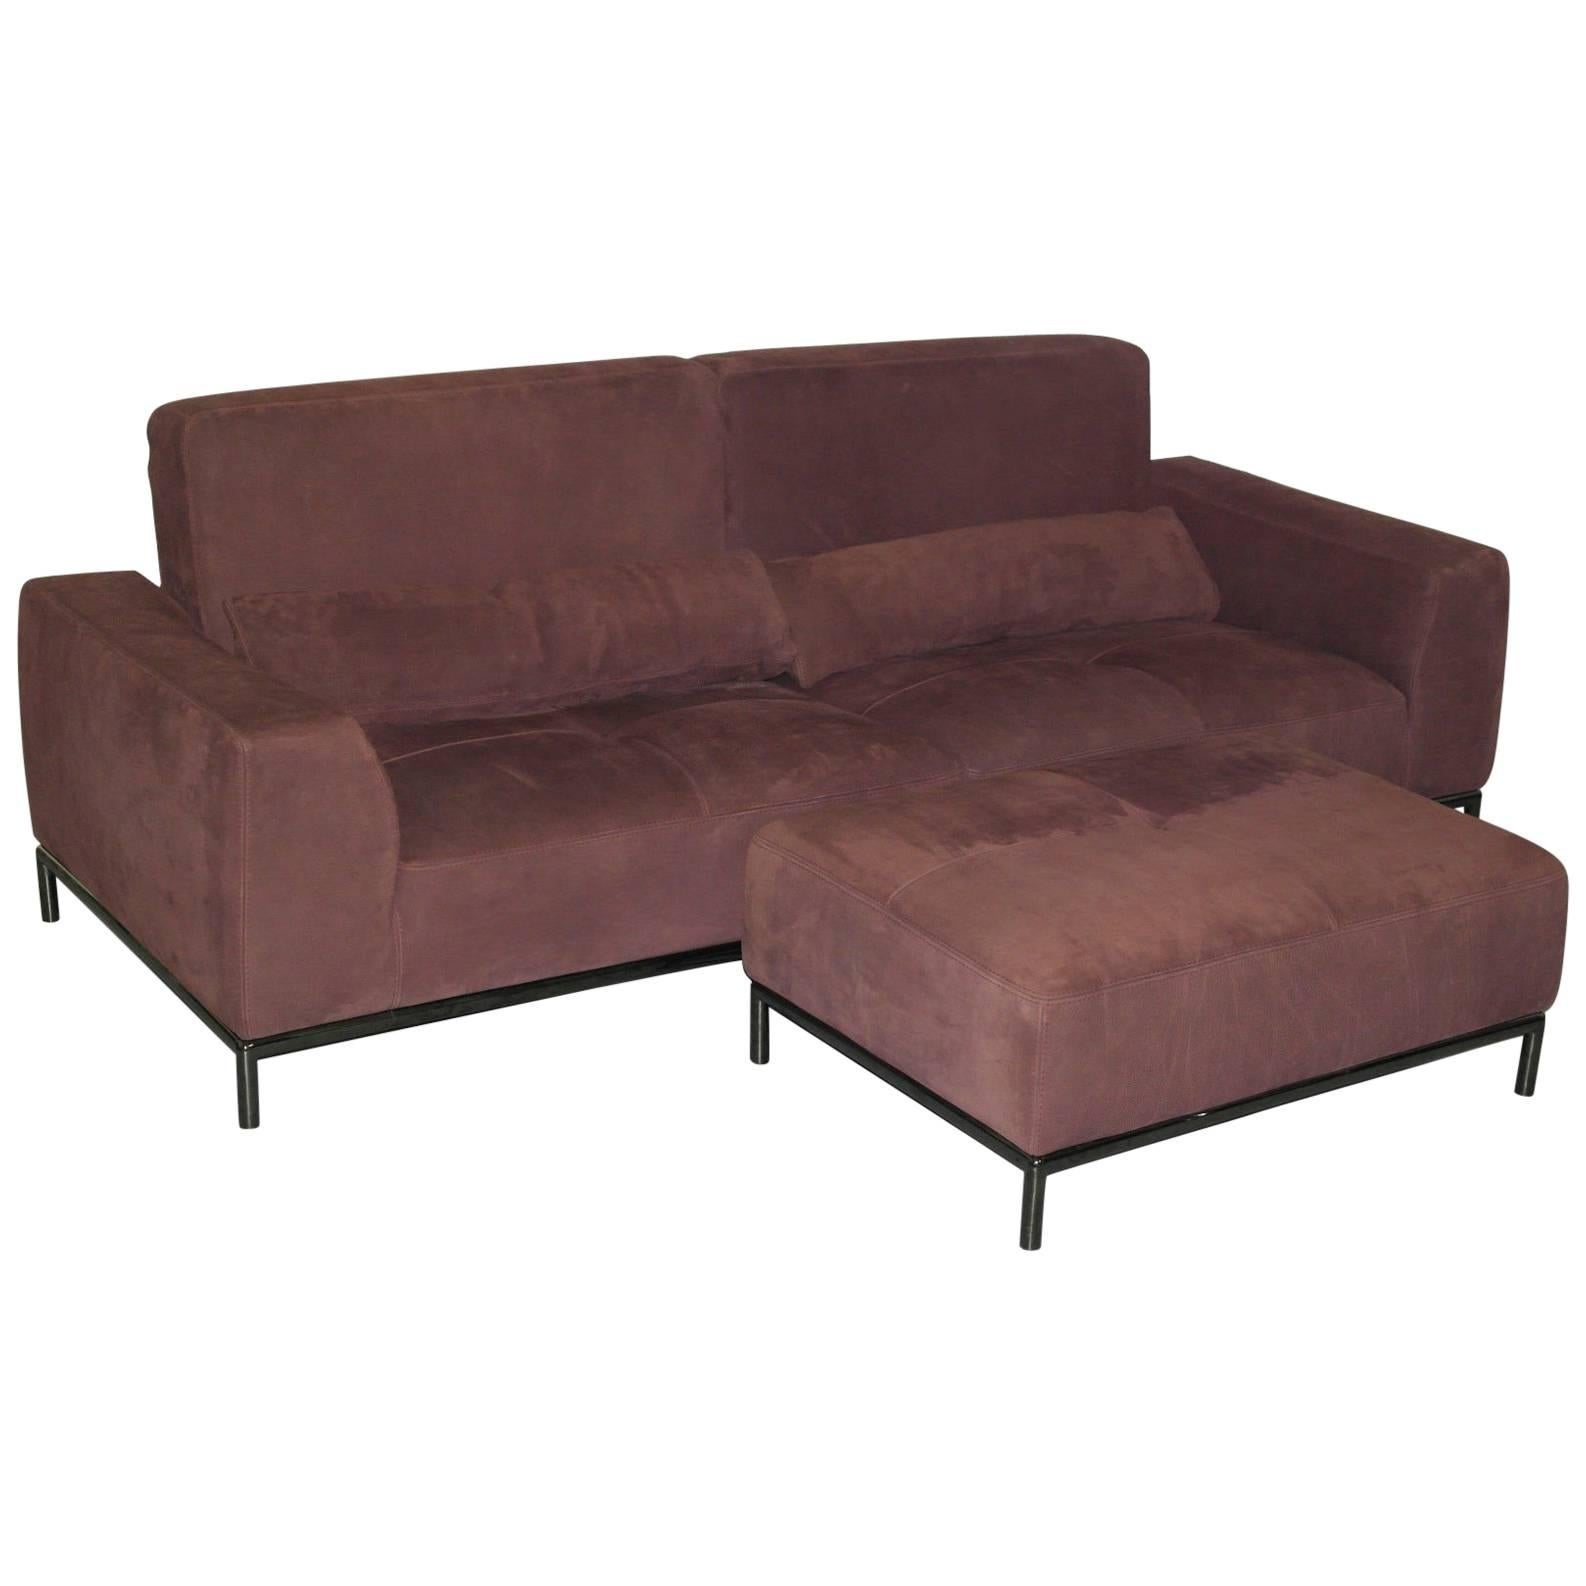 Nubuck Velvet Leather Recliner, Four Seater Sofa And Footstool For Sale